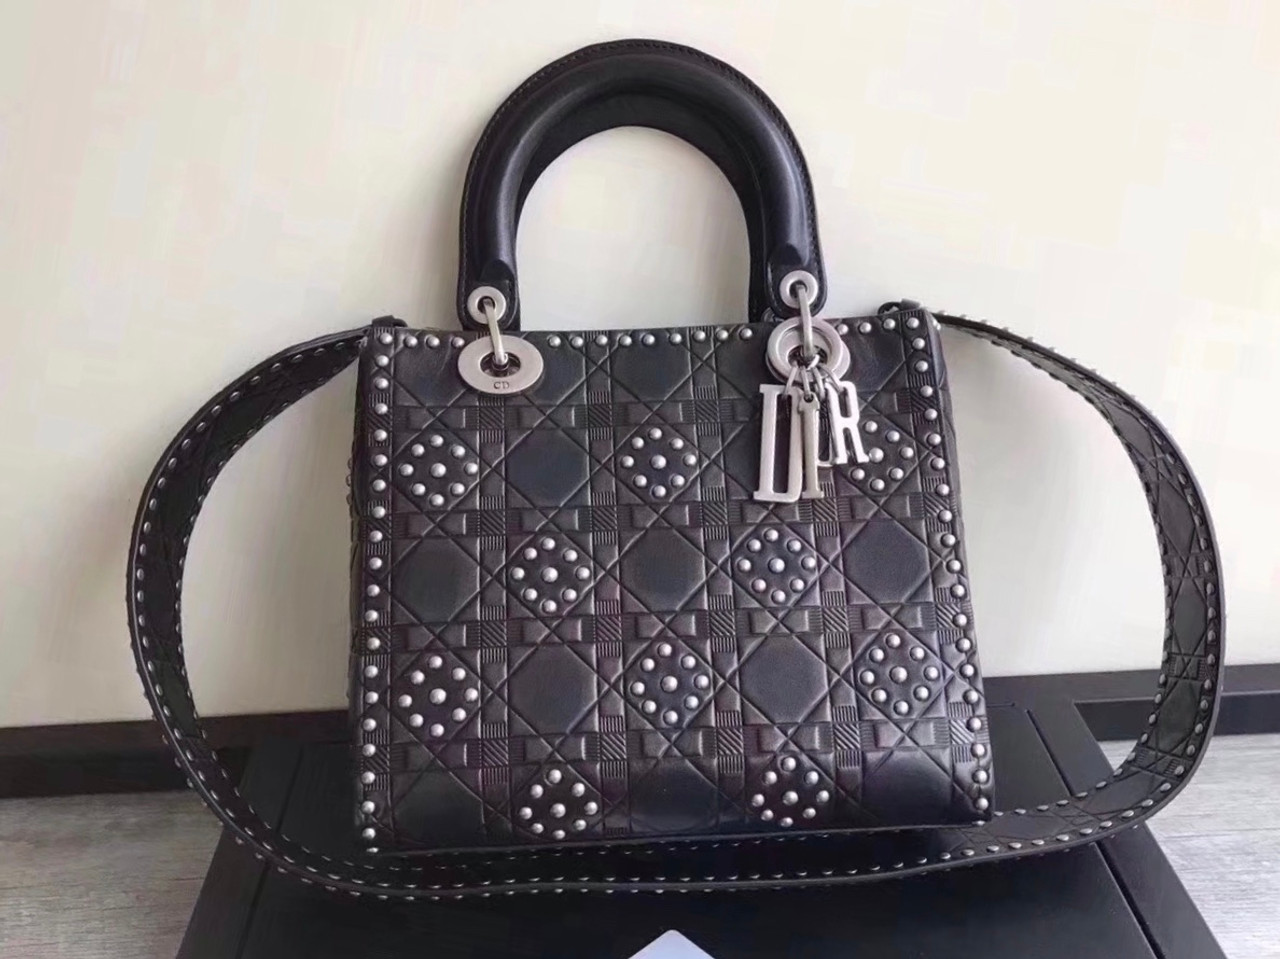 Christian dior cruise lady dior bag in black studded calfskin jpg 1188x890 Christian  dior handbag bags e8eb3727ea09b